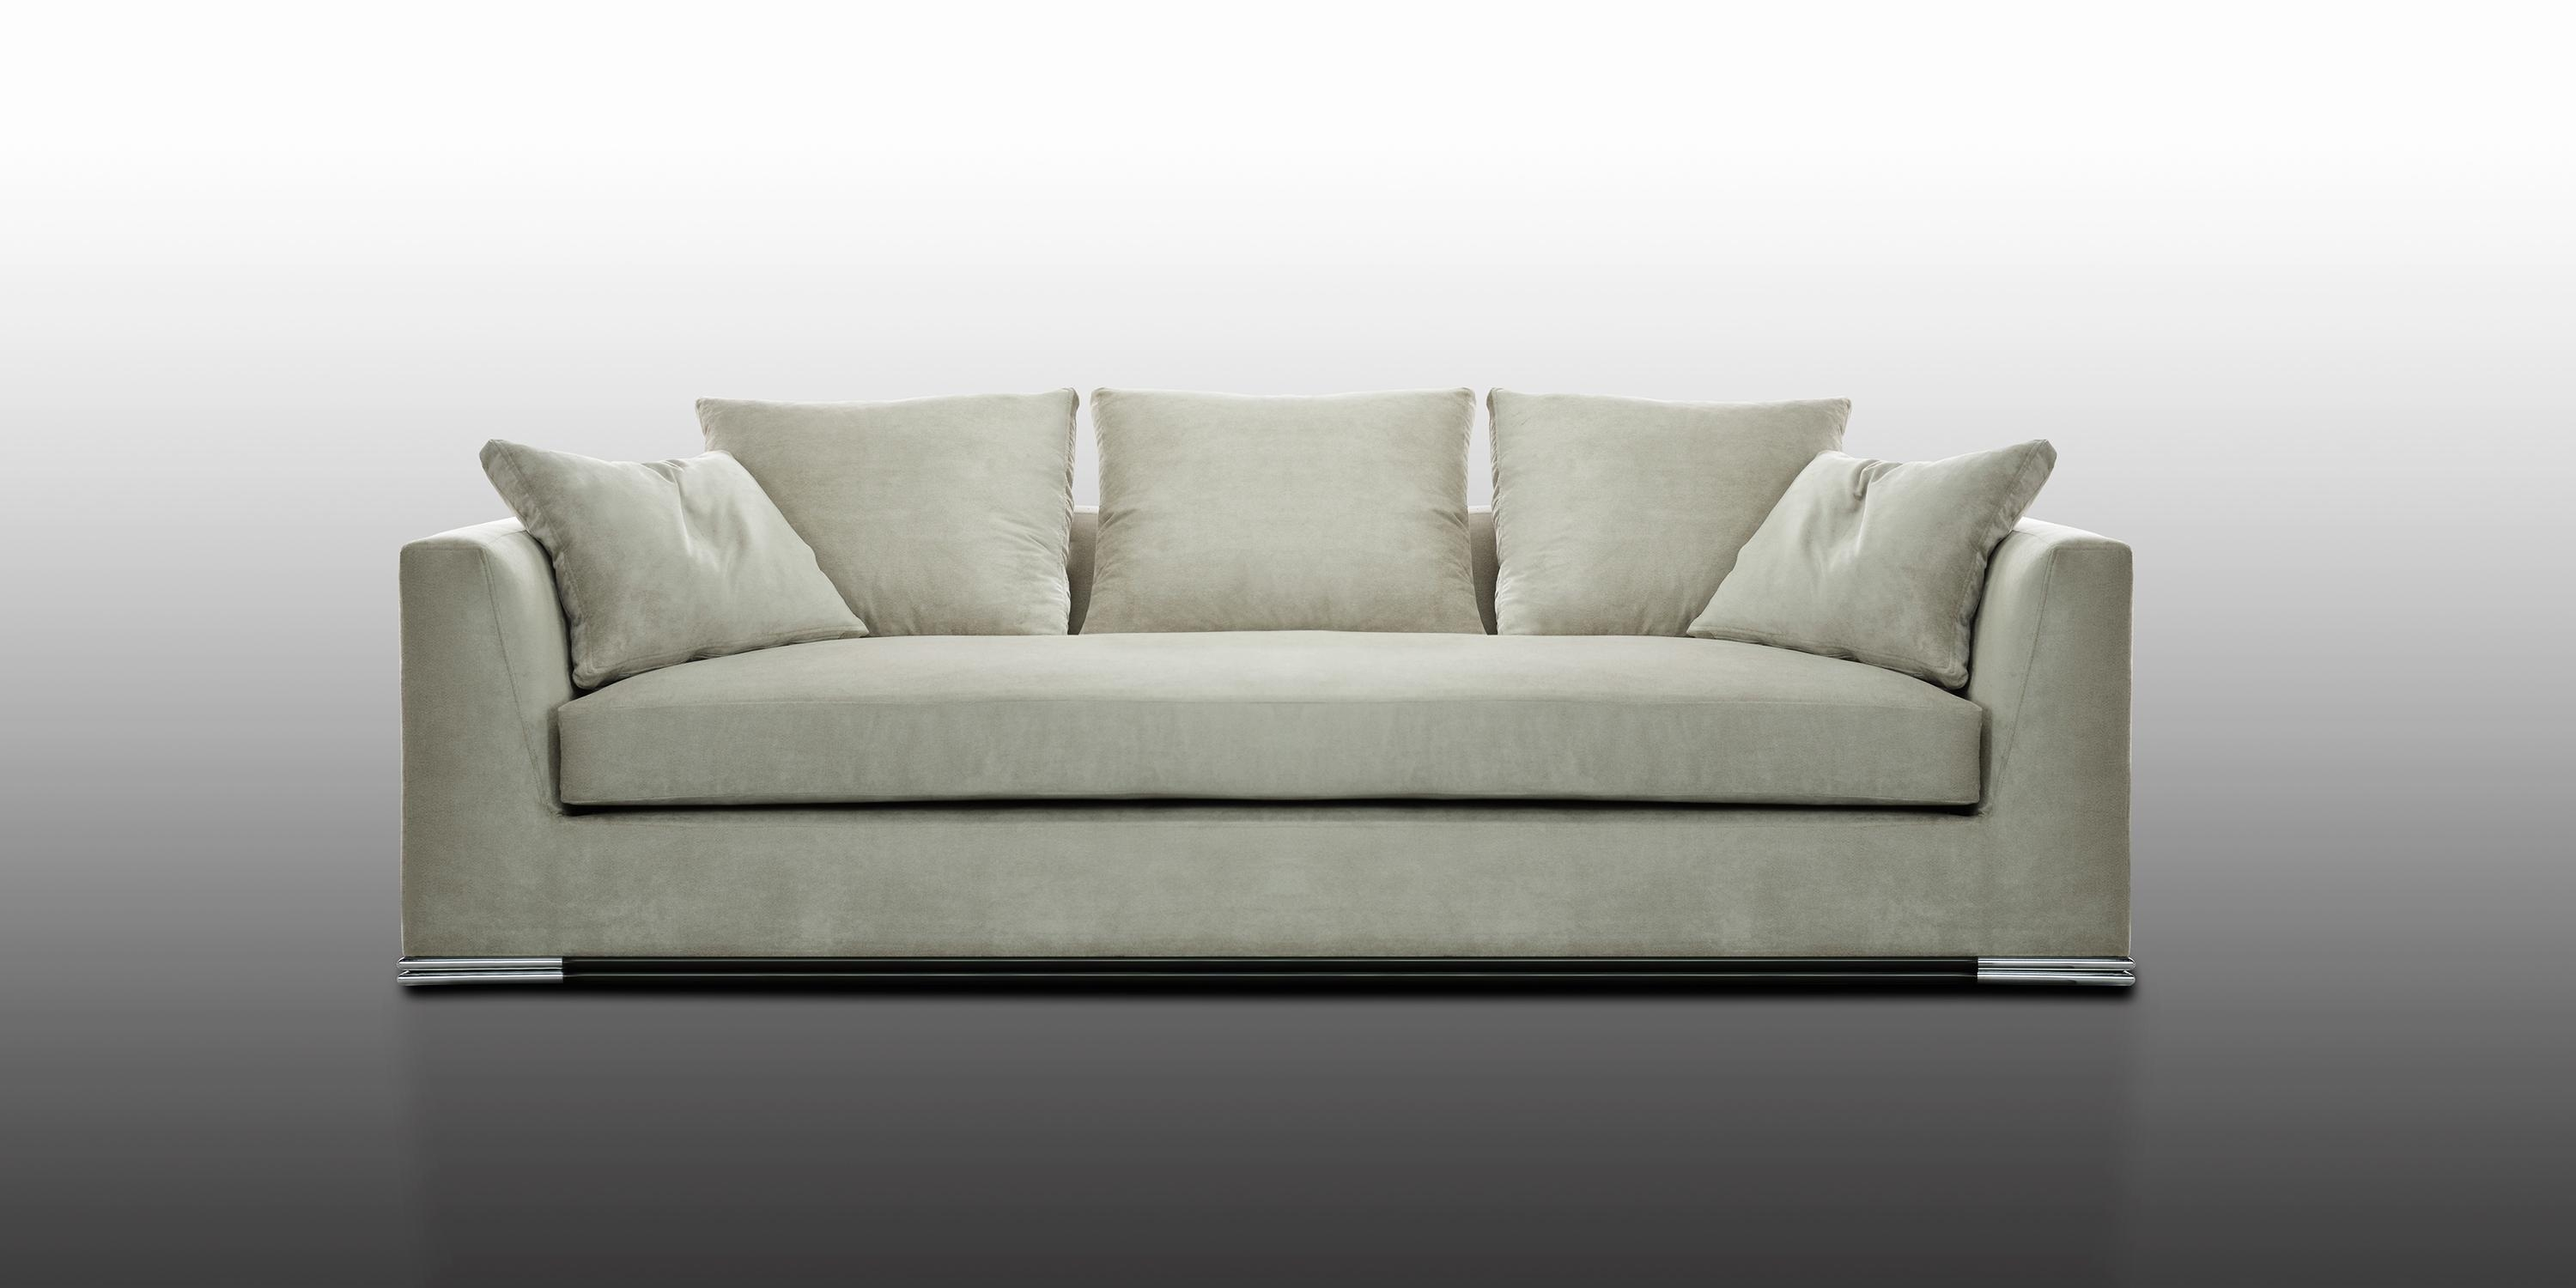 nathan anthony egoist sofa compact sectional 20 inspirations sofas ideas